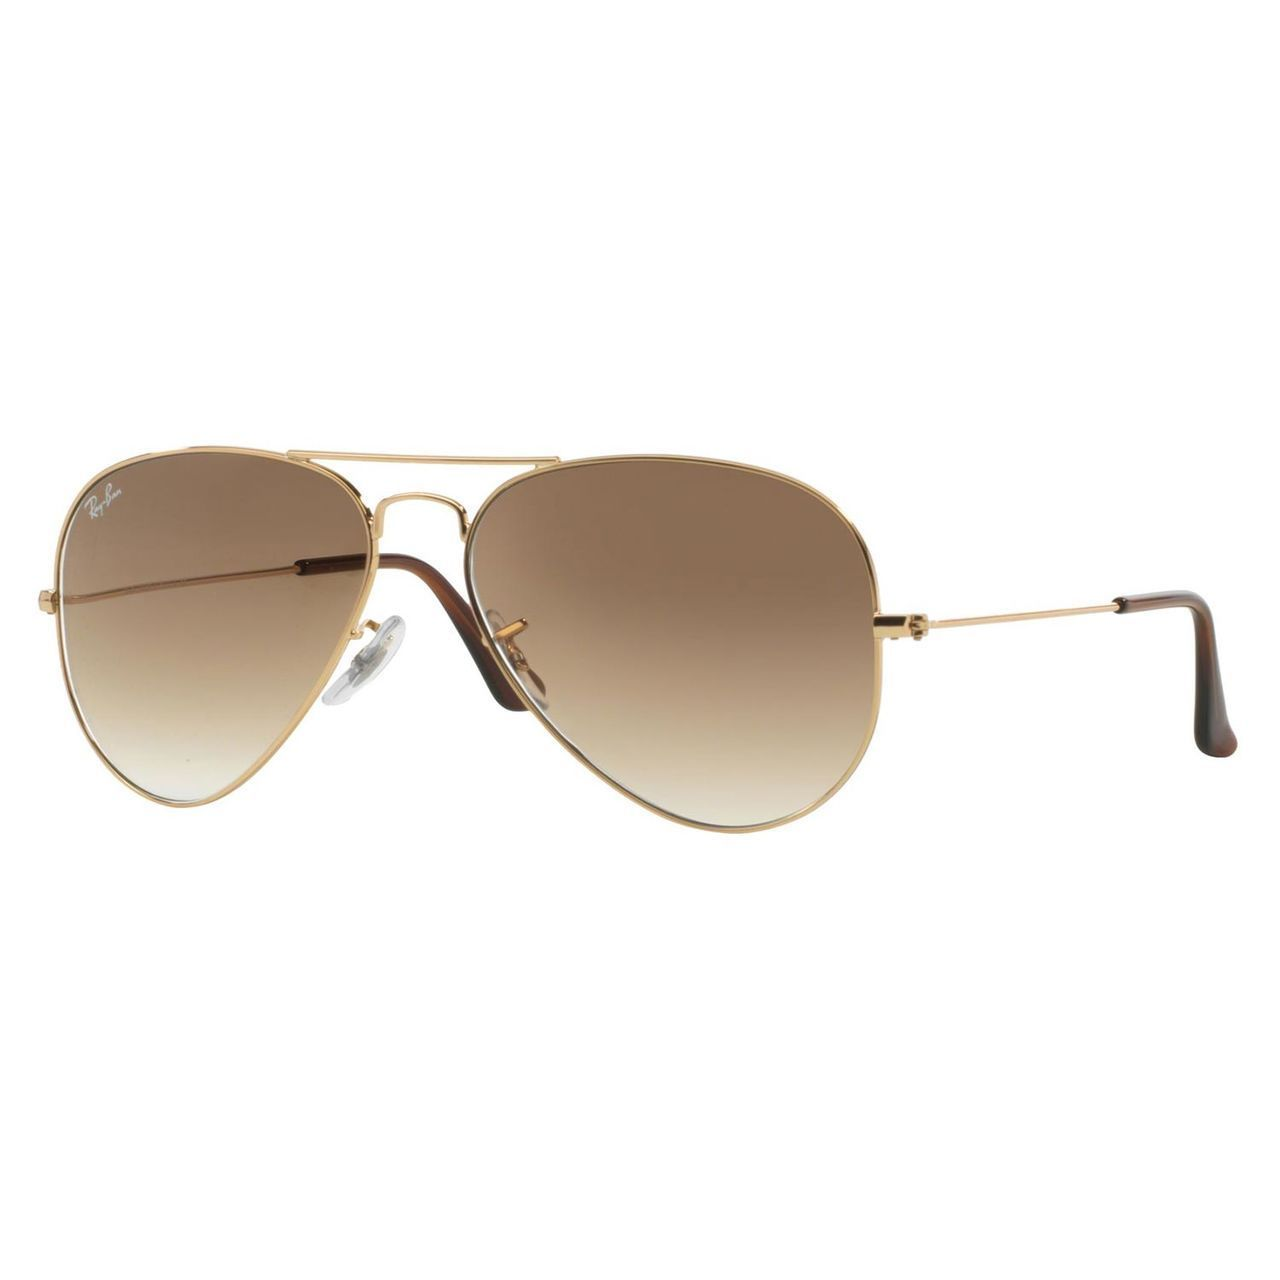 a54166993ef96 Shop Ray-Ban Aviator  RB3025  Unisex Gold Frame Light Brown Gradient Lens  Sunglasses - Free Shipping Today - Overstock.com - 8546523